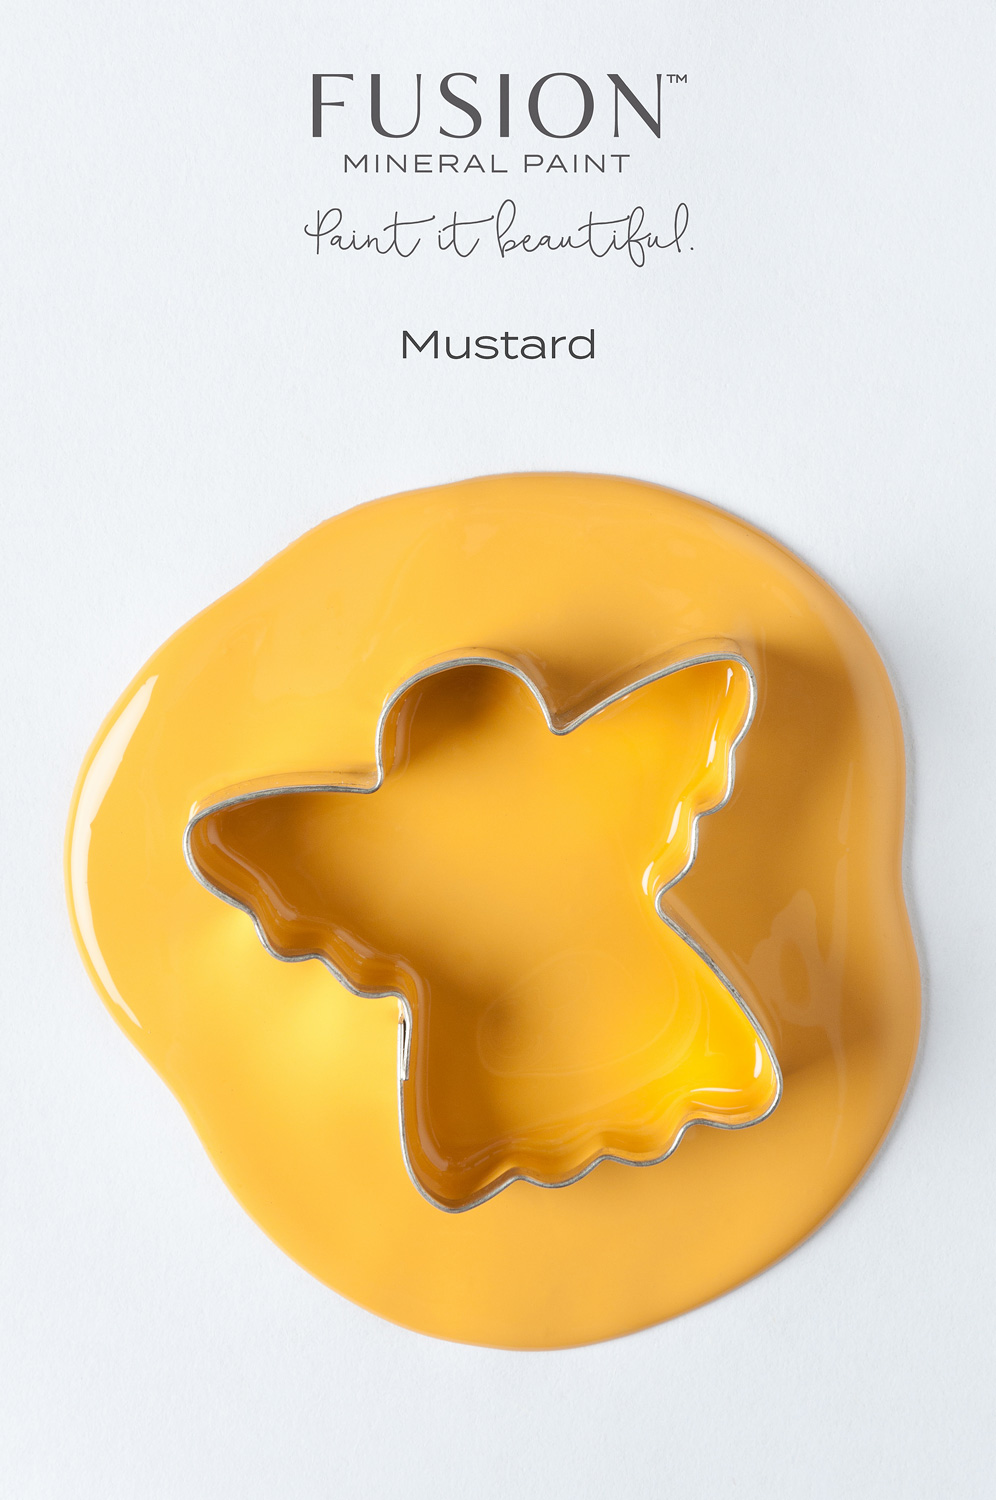 Fusion Mineral Paint in the colour Mustard. It's the perfect shade of yellow for the Holiday Season.